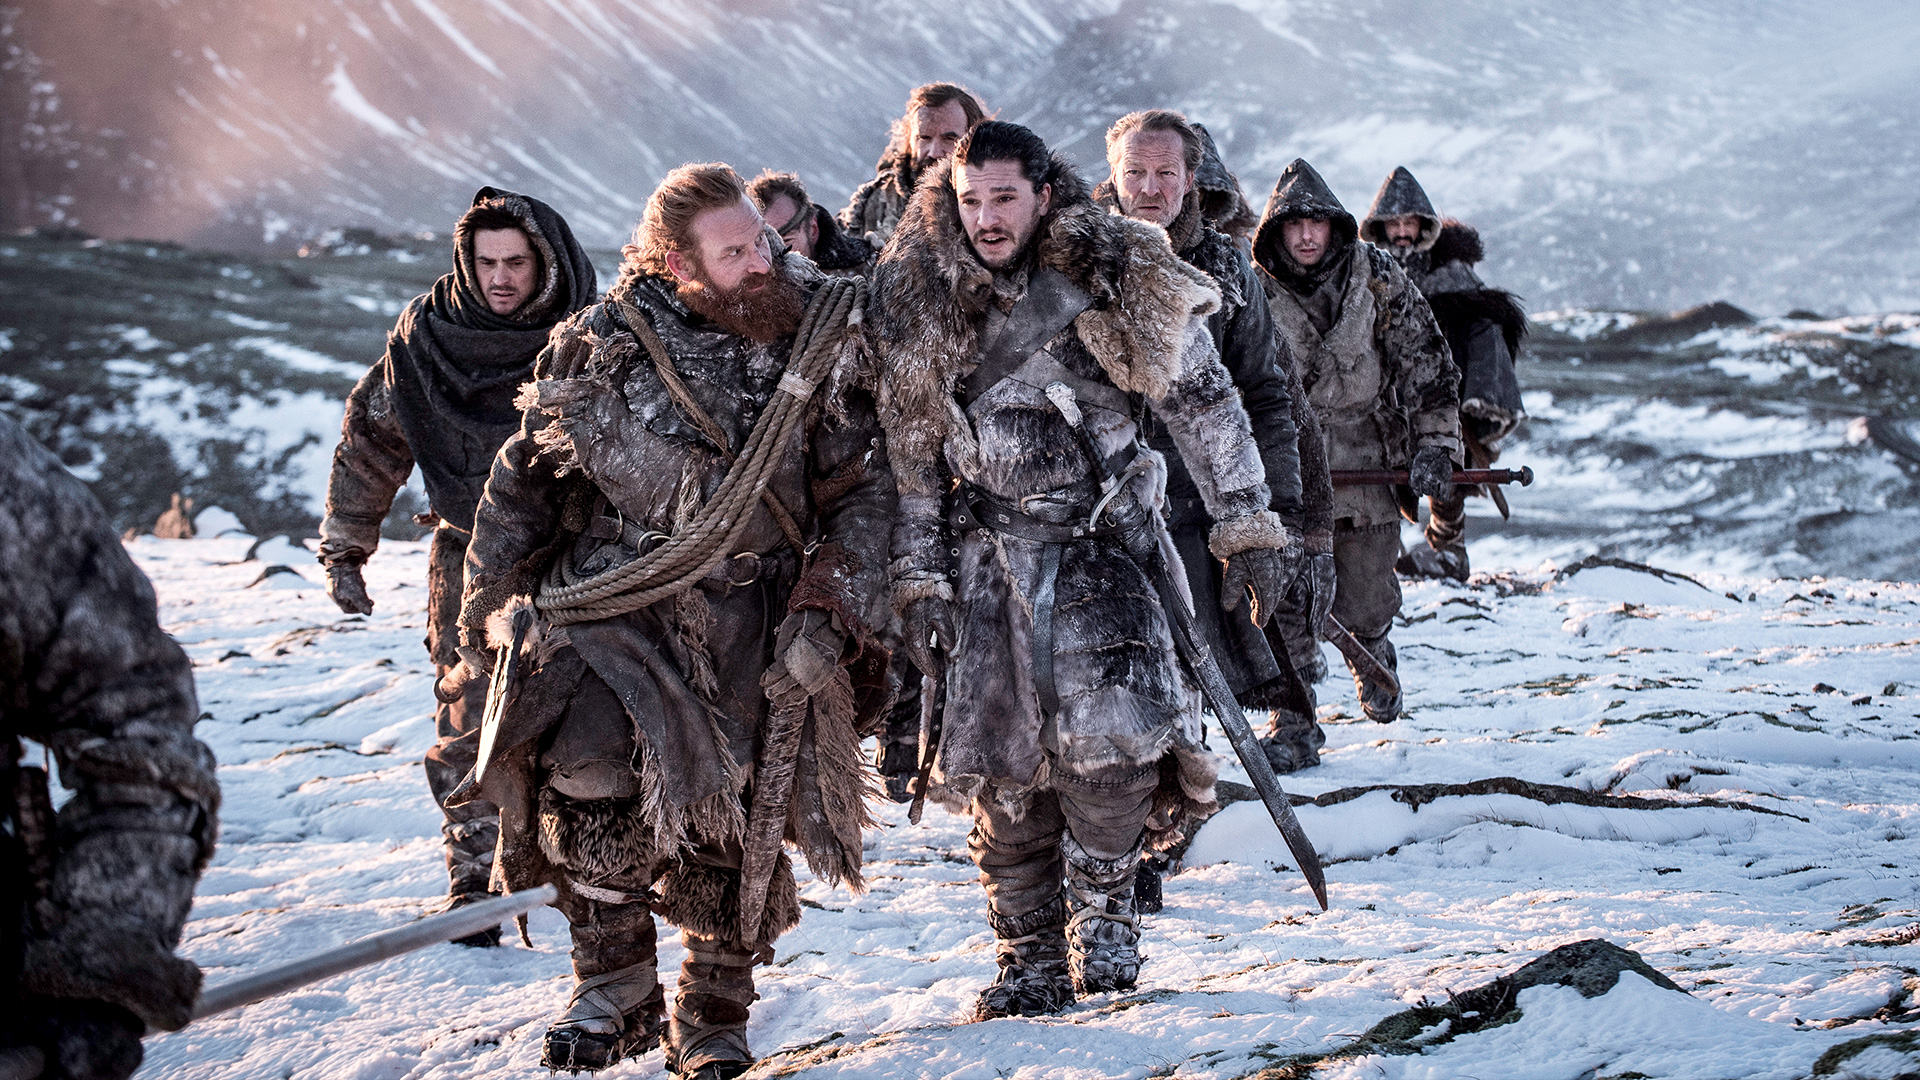 Beyond The Wall Episode Game Of Thrones Wiki Fandom